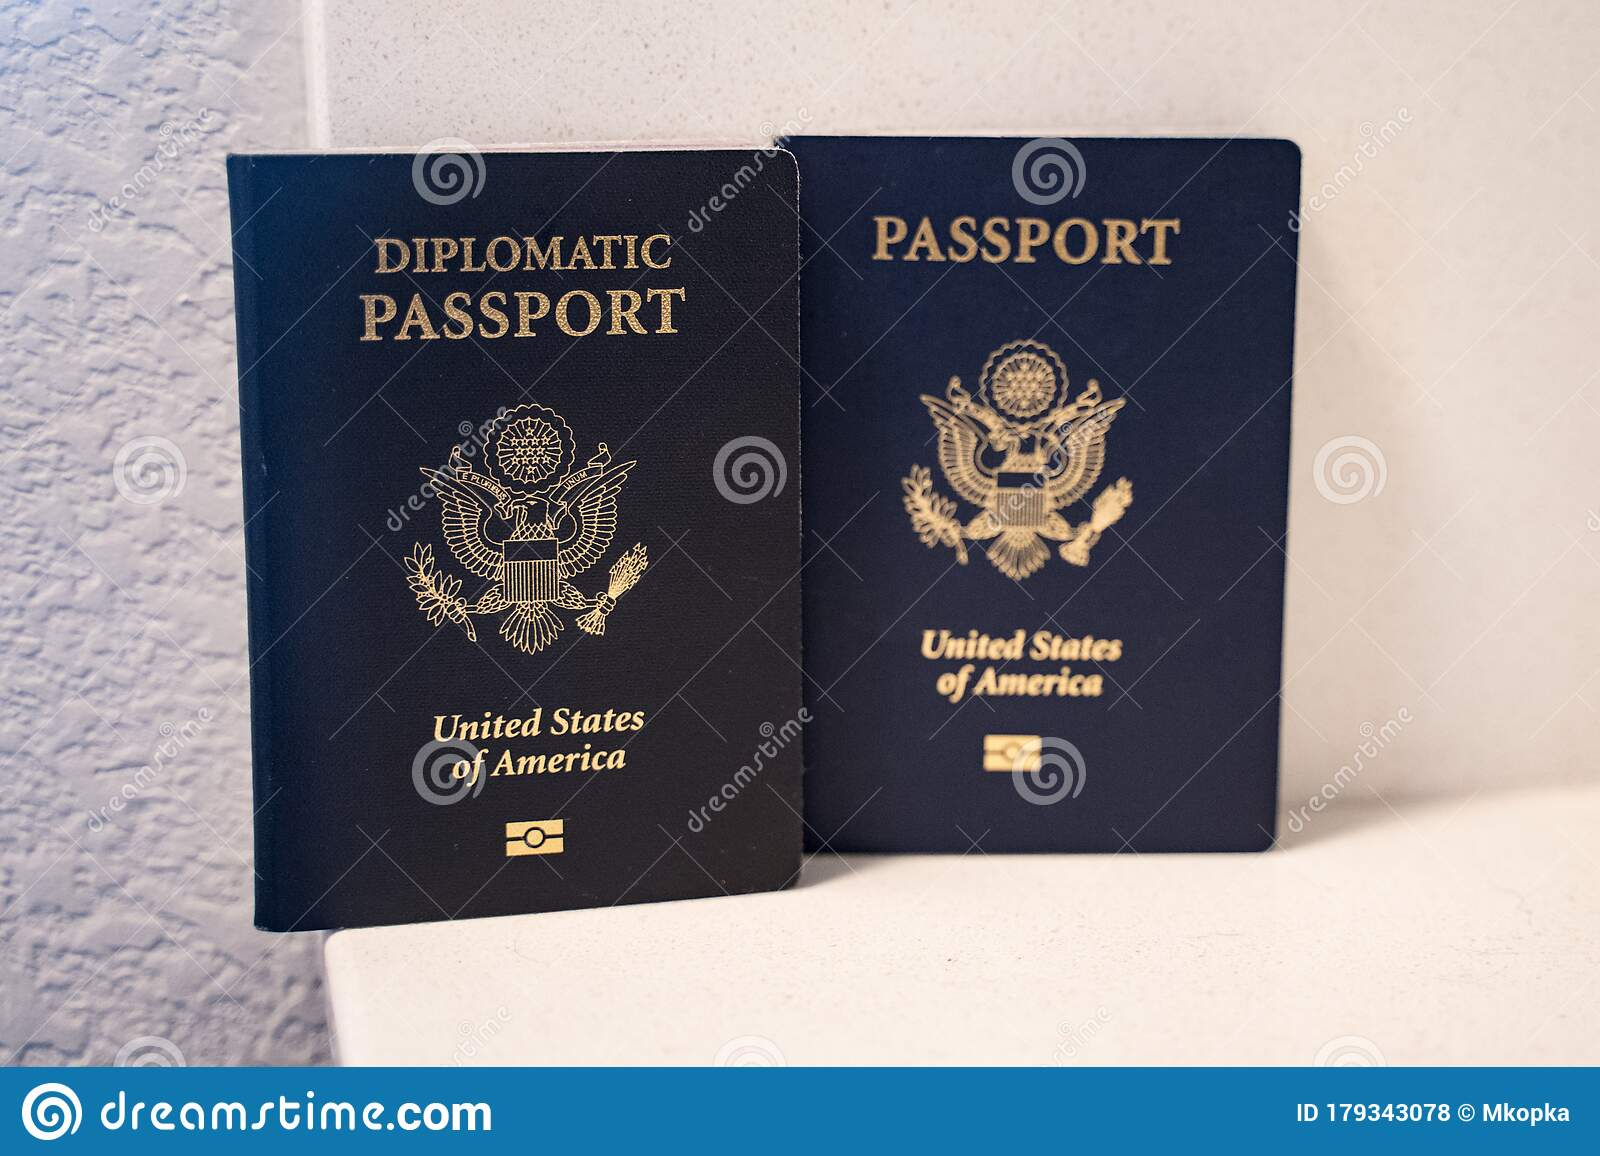 Two Passports For The United States Of America Citizens